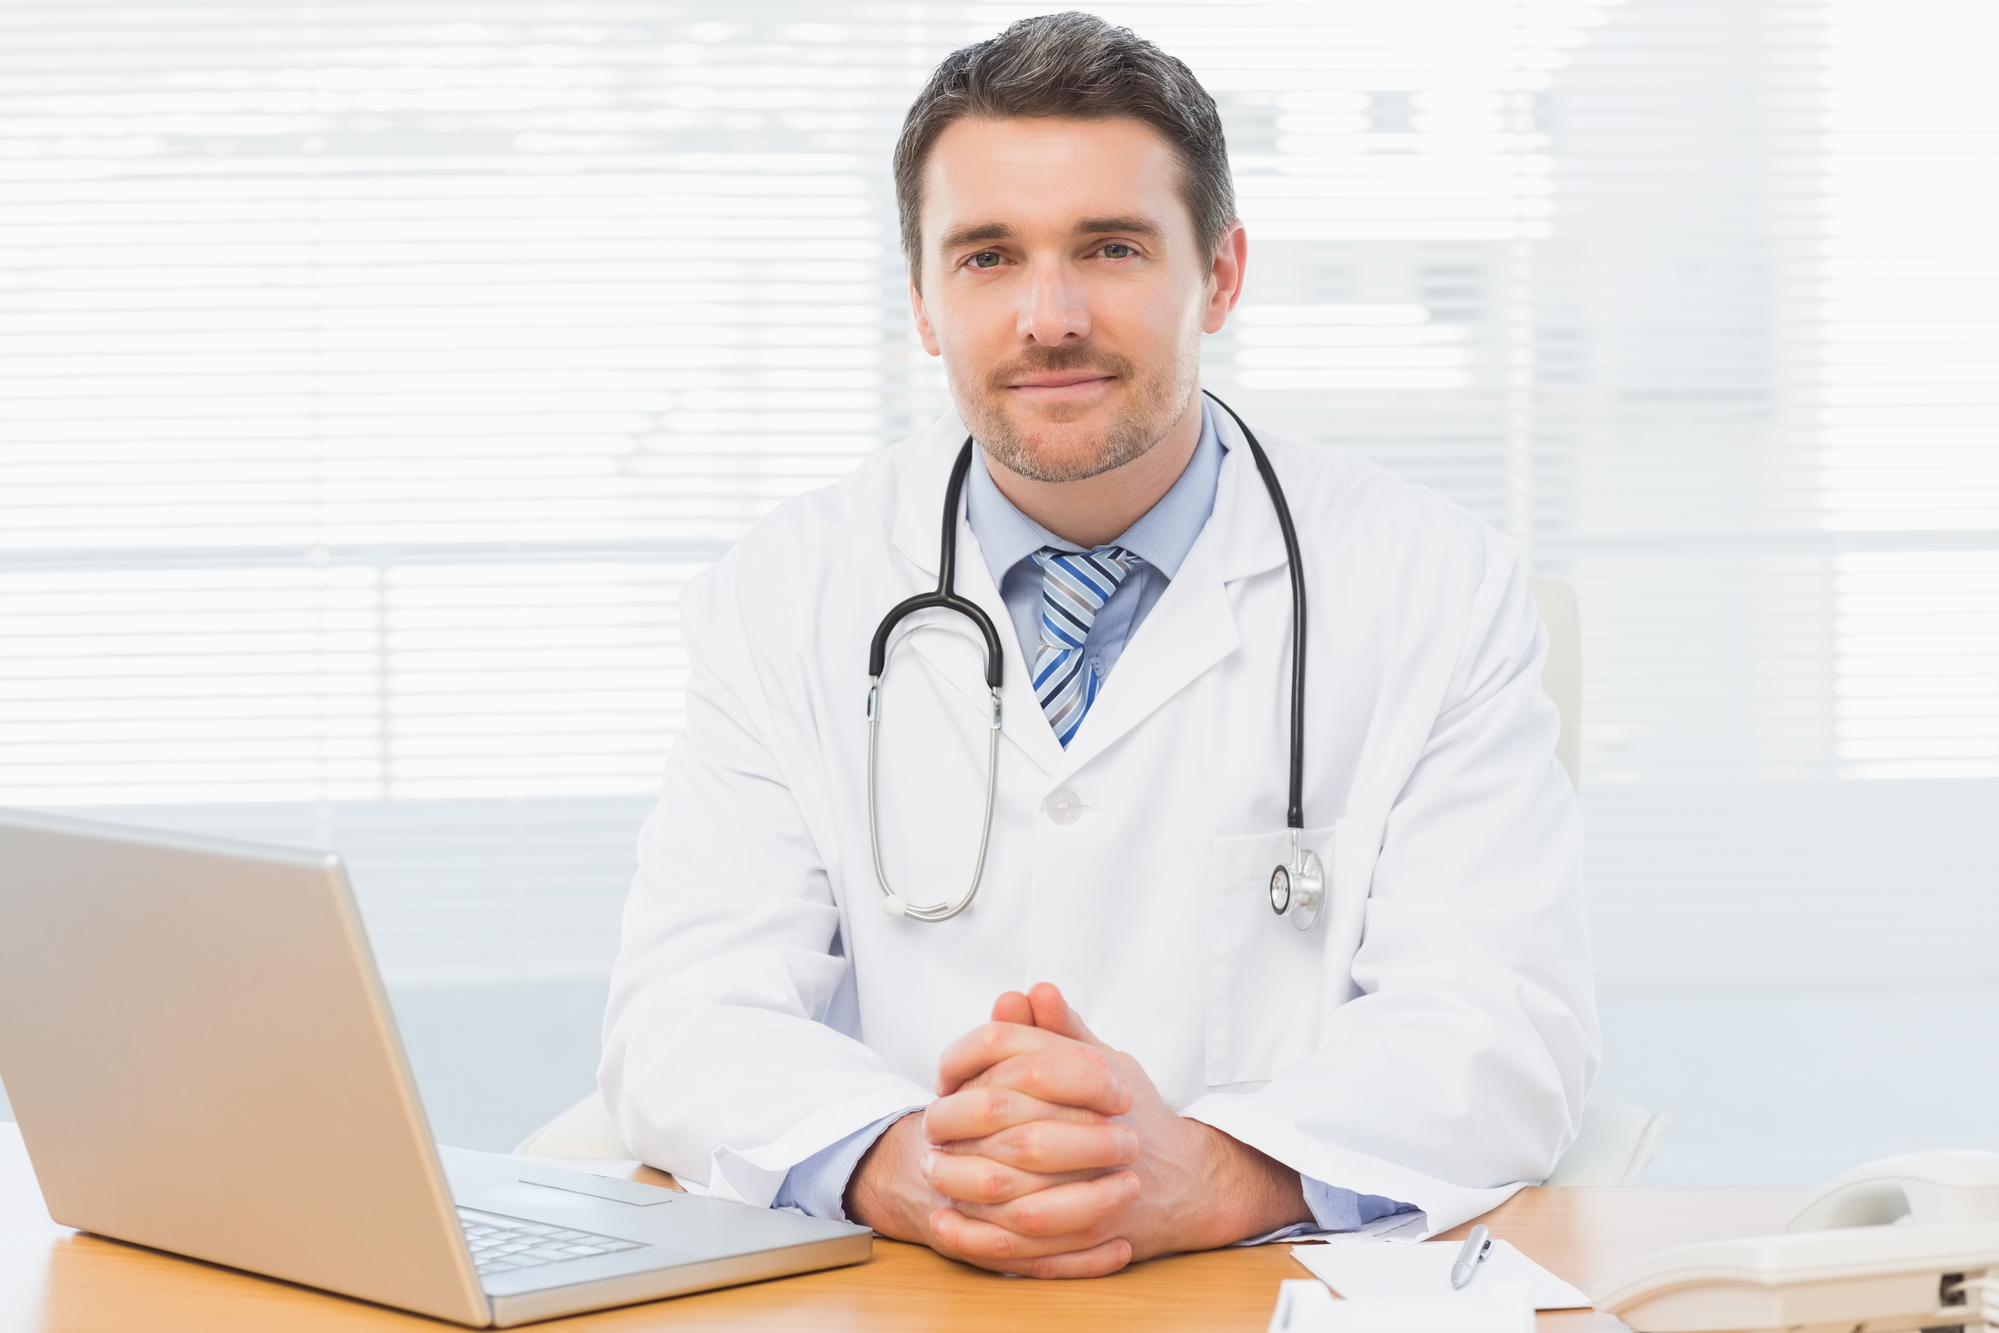 Where can I find the best low t doc?